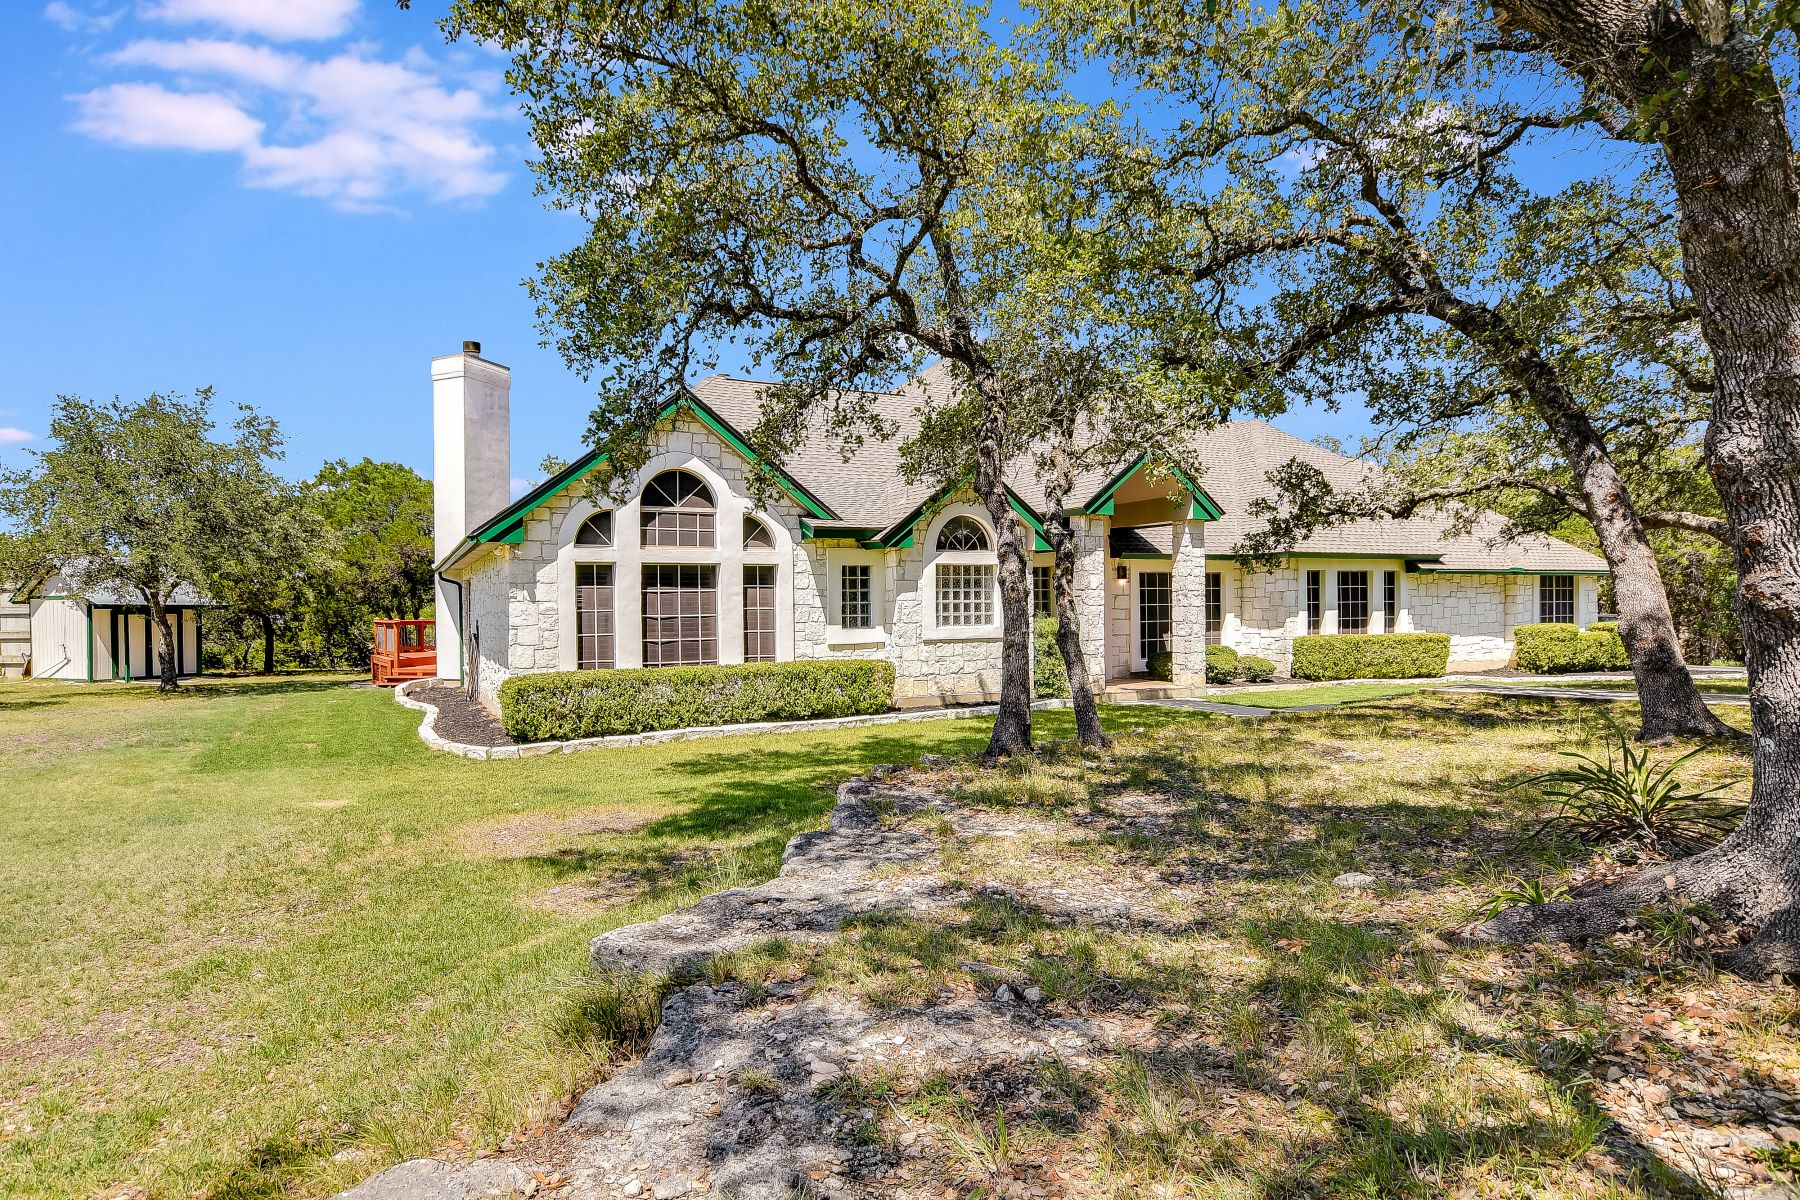 Single Family Homes for Sale at Spectacular Texas Hill Country Living 2739 John Charles Road Bulverde, Texas 78163 United States